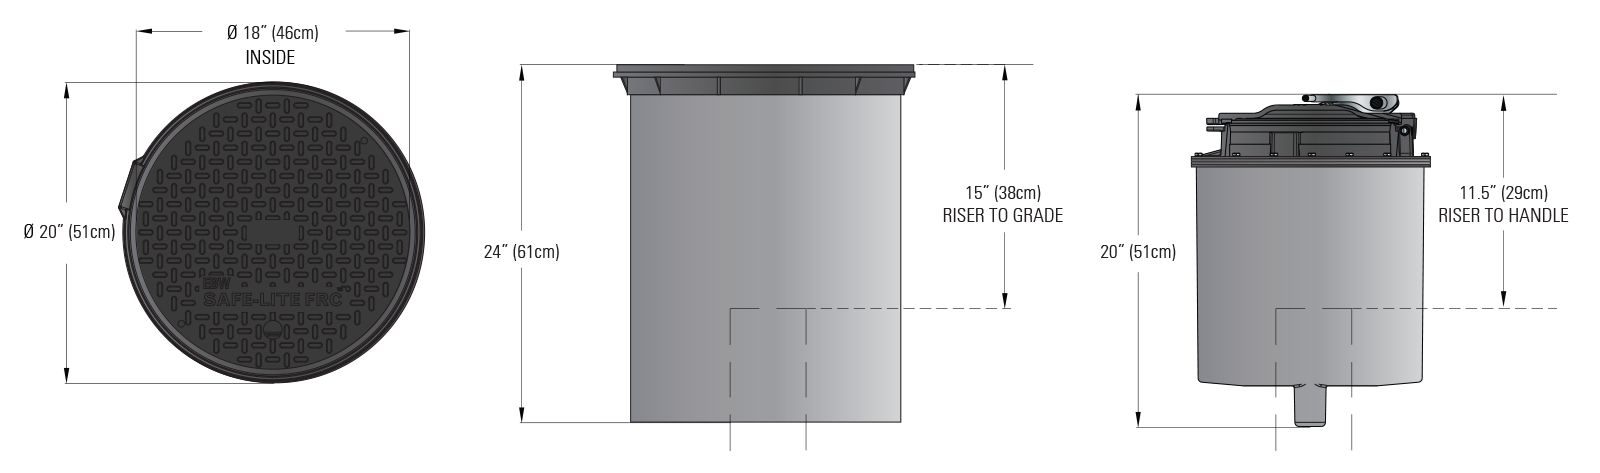 Defender Series Spill Containers - Below Grade Dims.psd